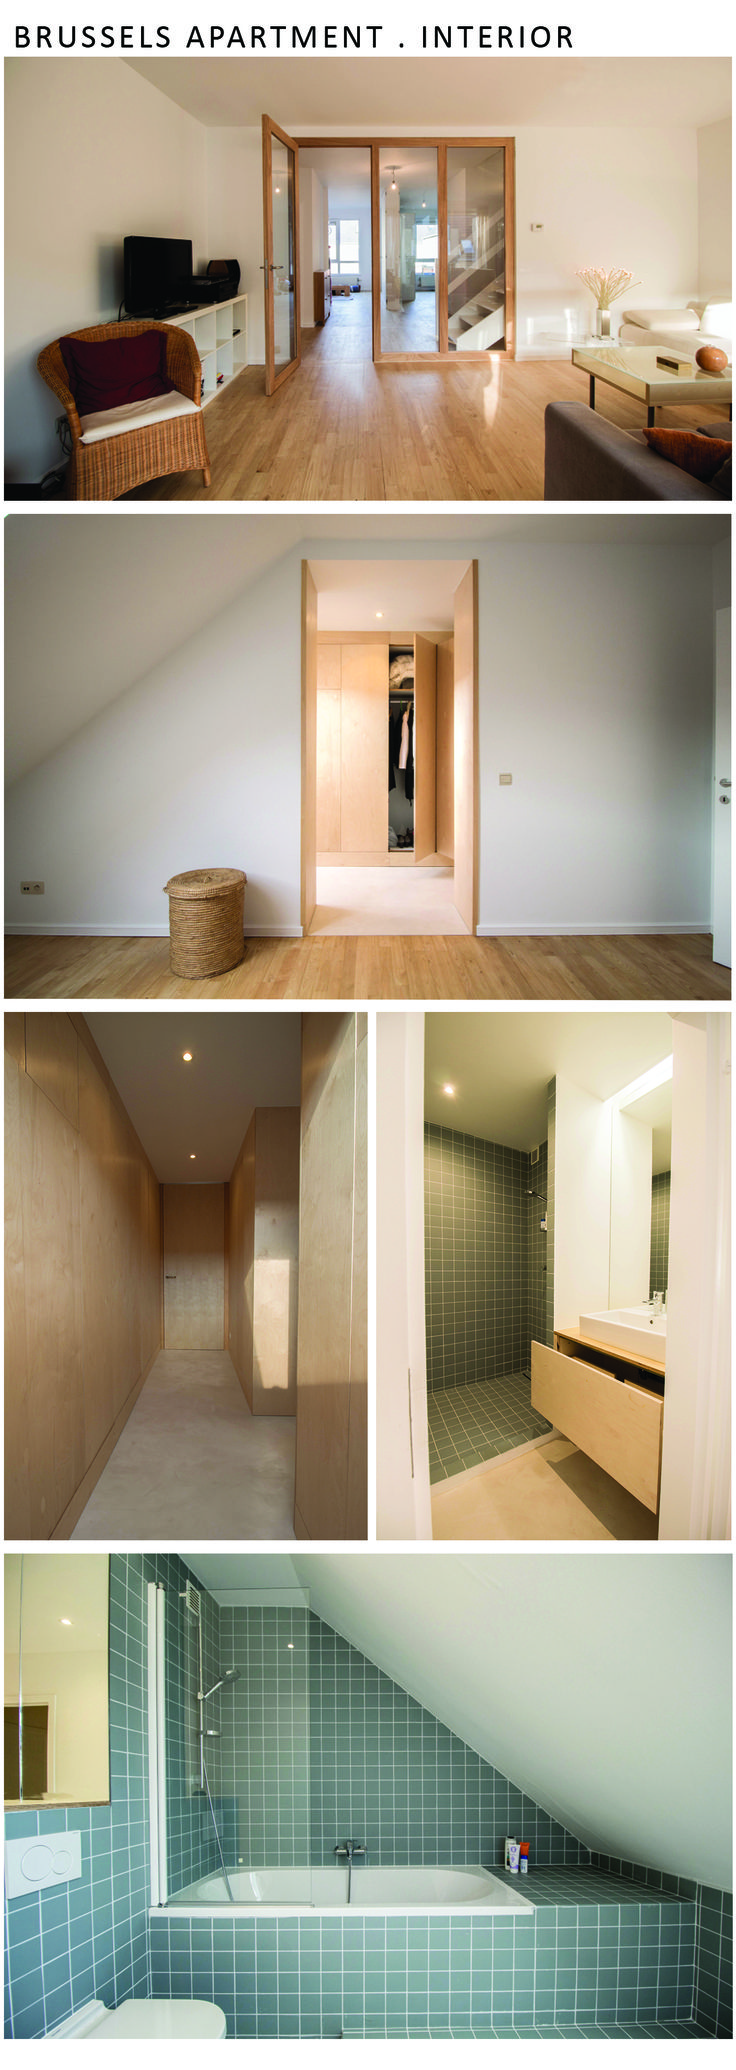 Renovation of apartment . Interior design developer and creative in BC architects . 2014 . Brussels | Belgium